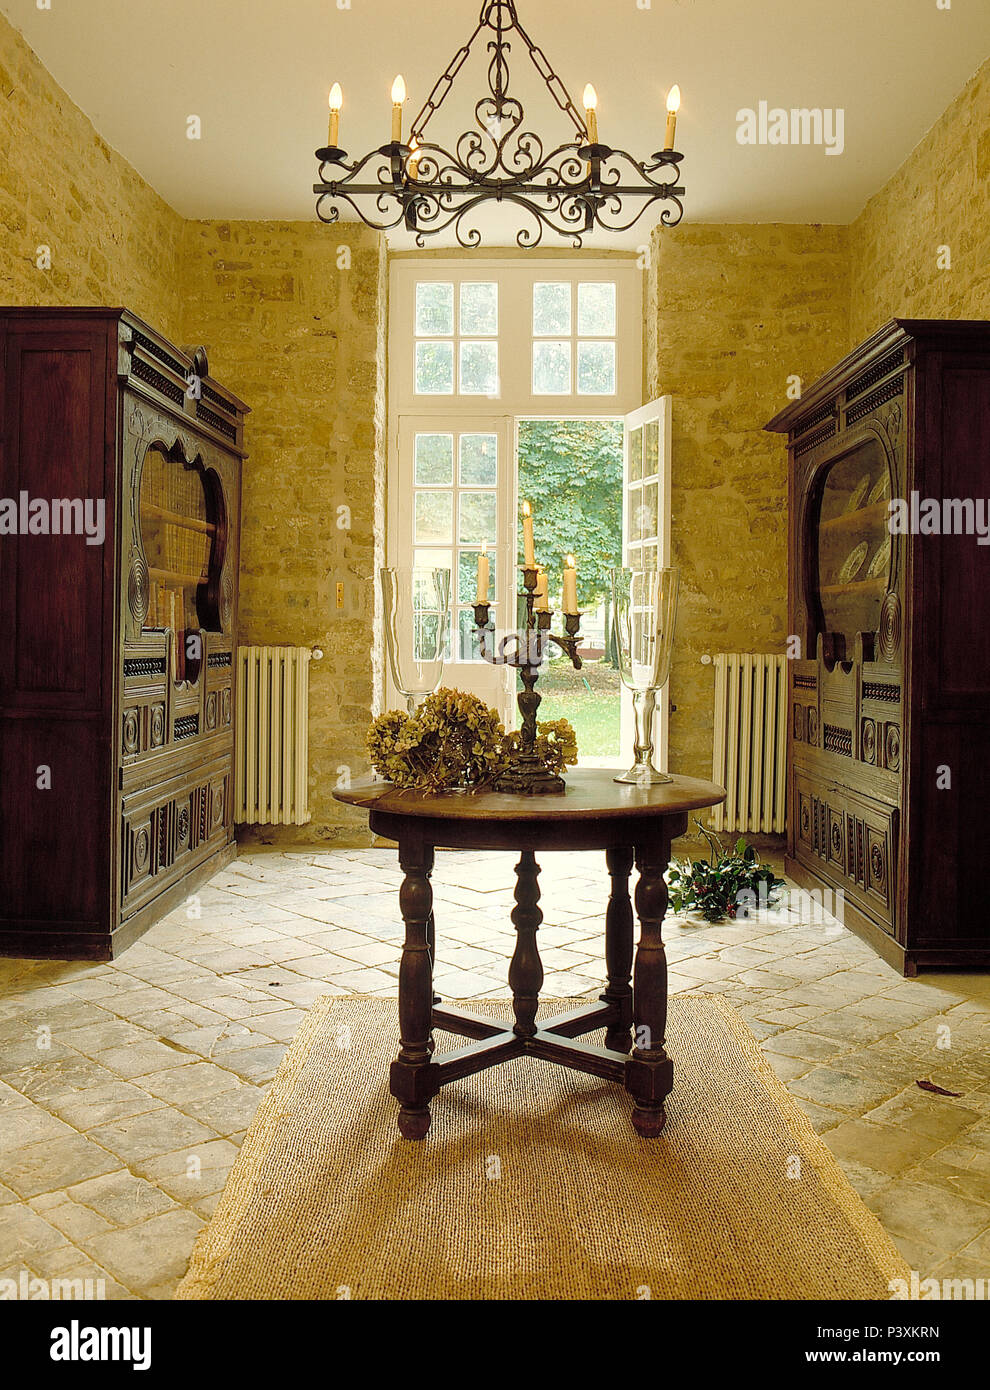 Sisal Rug On Stone Tiled Floor In French Country Dining Room With Oak Table And Dressers